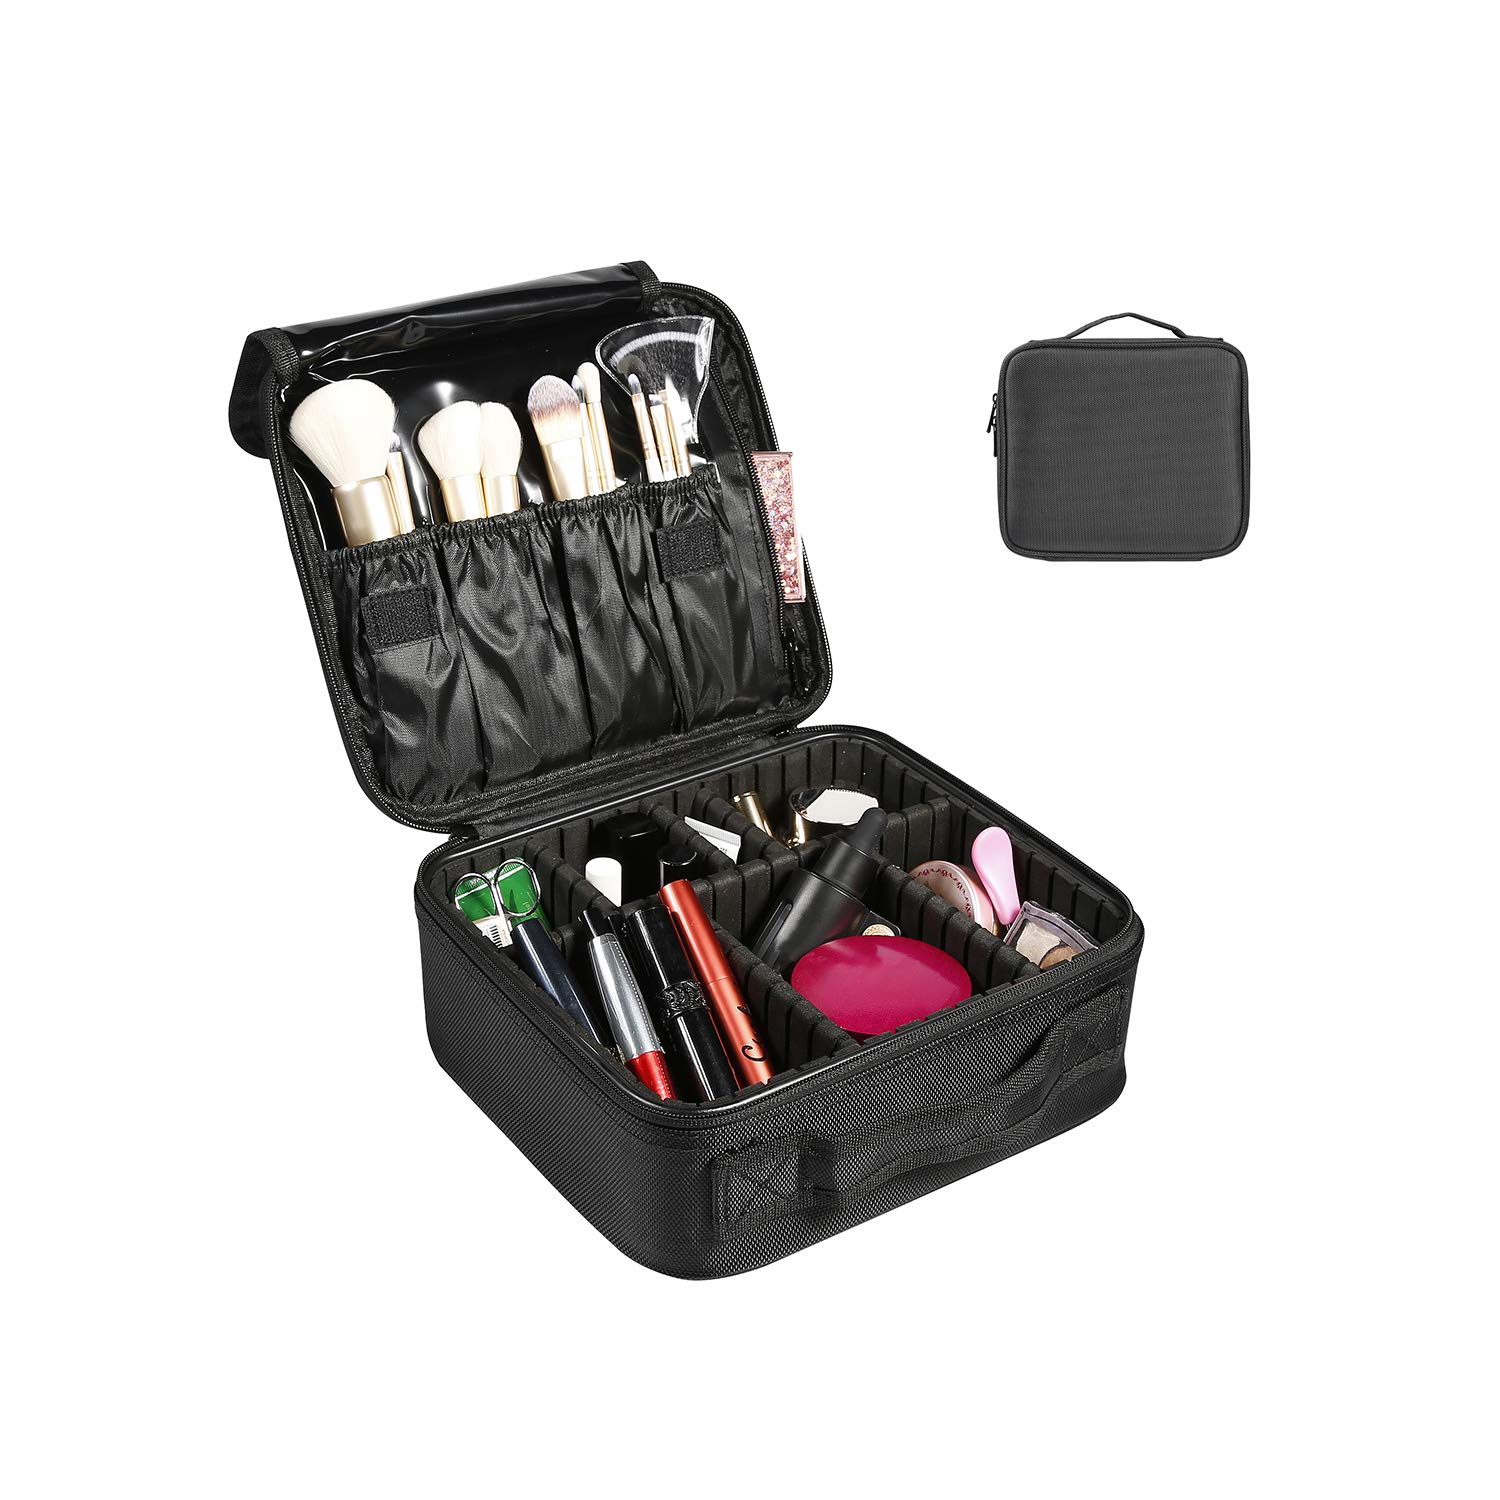 The best makeup case around hands down